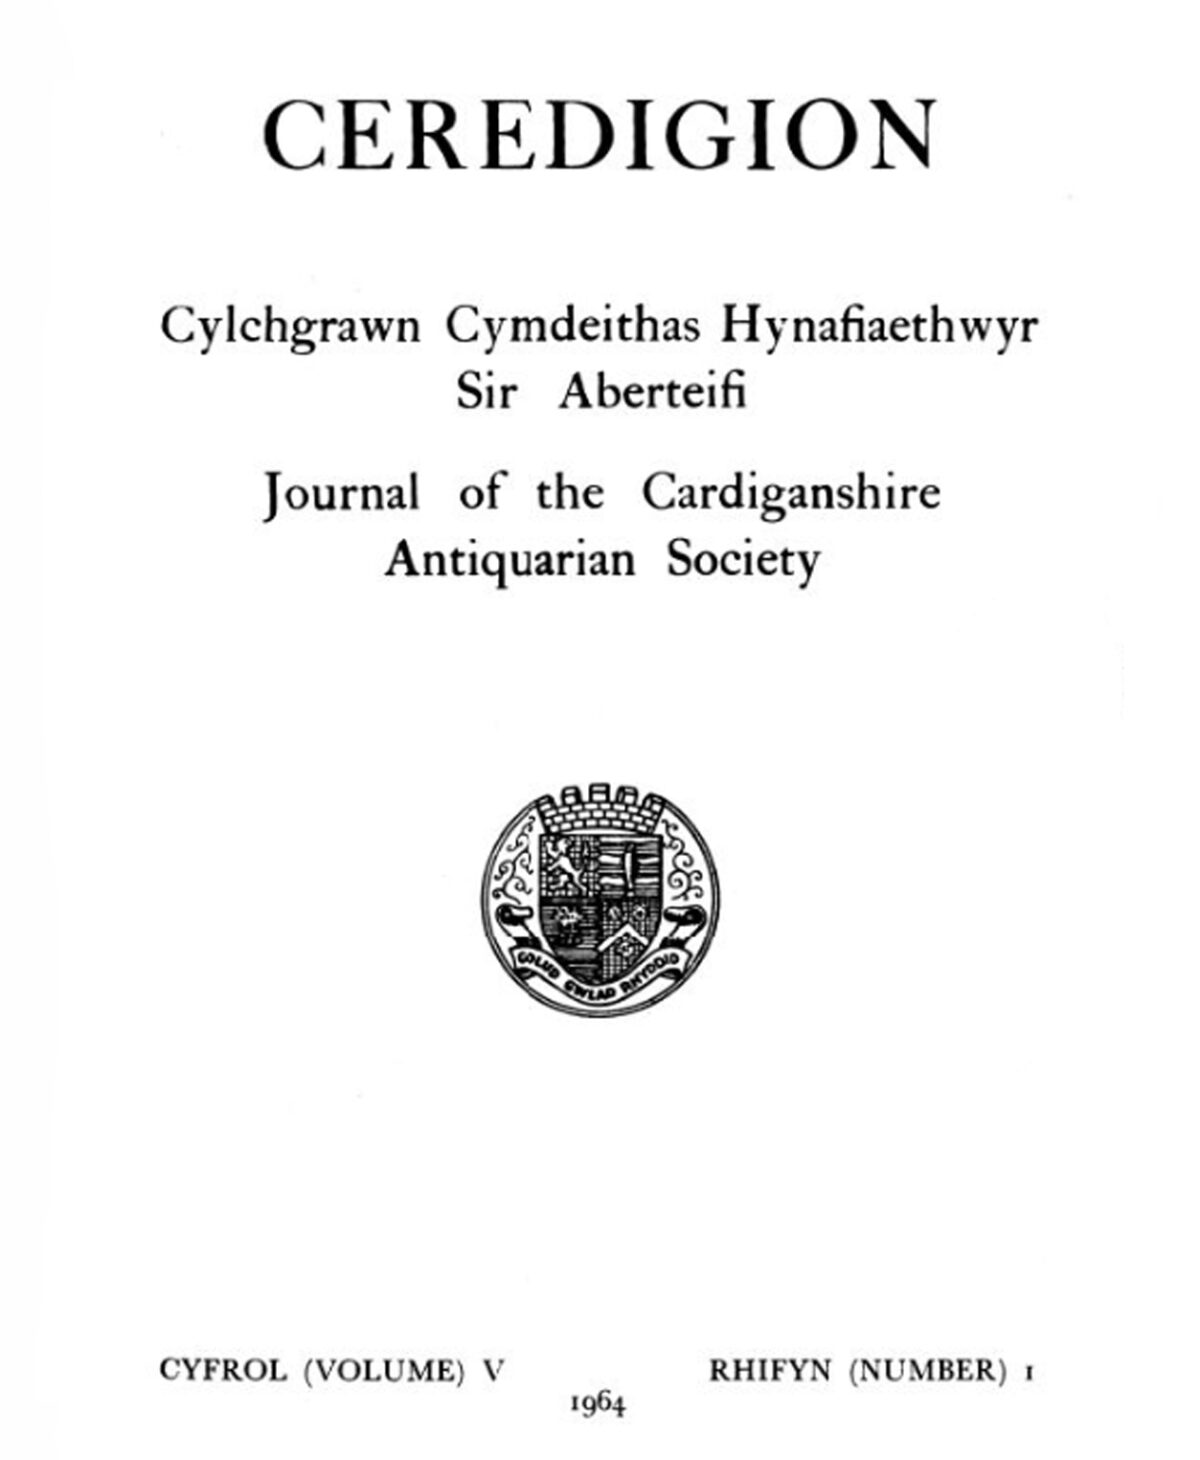 Ceredigion – Journal of the Cardiganshire Antiquarian Society, 1964 Vol V No I